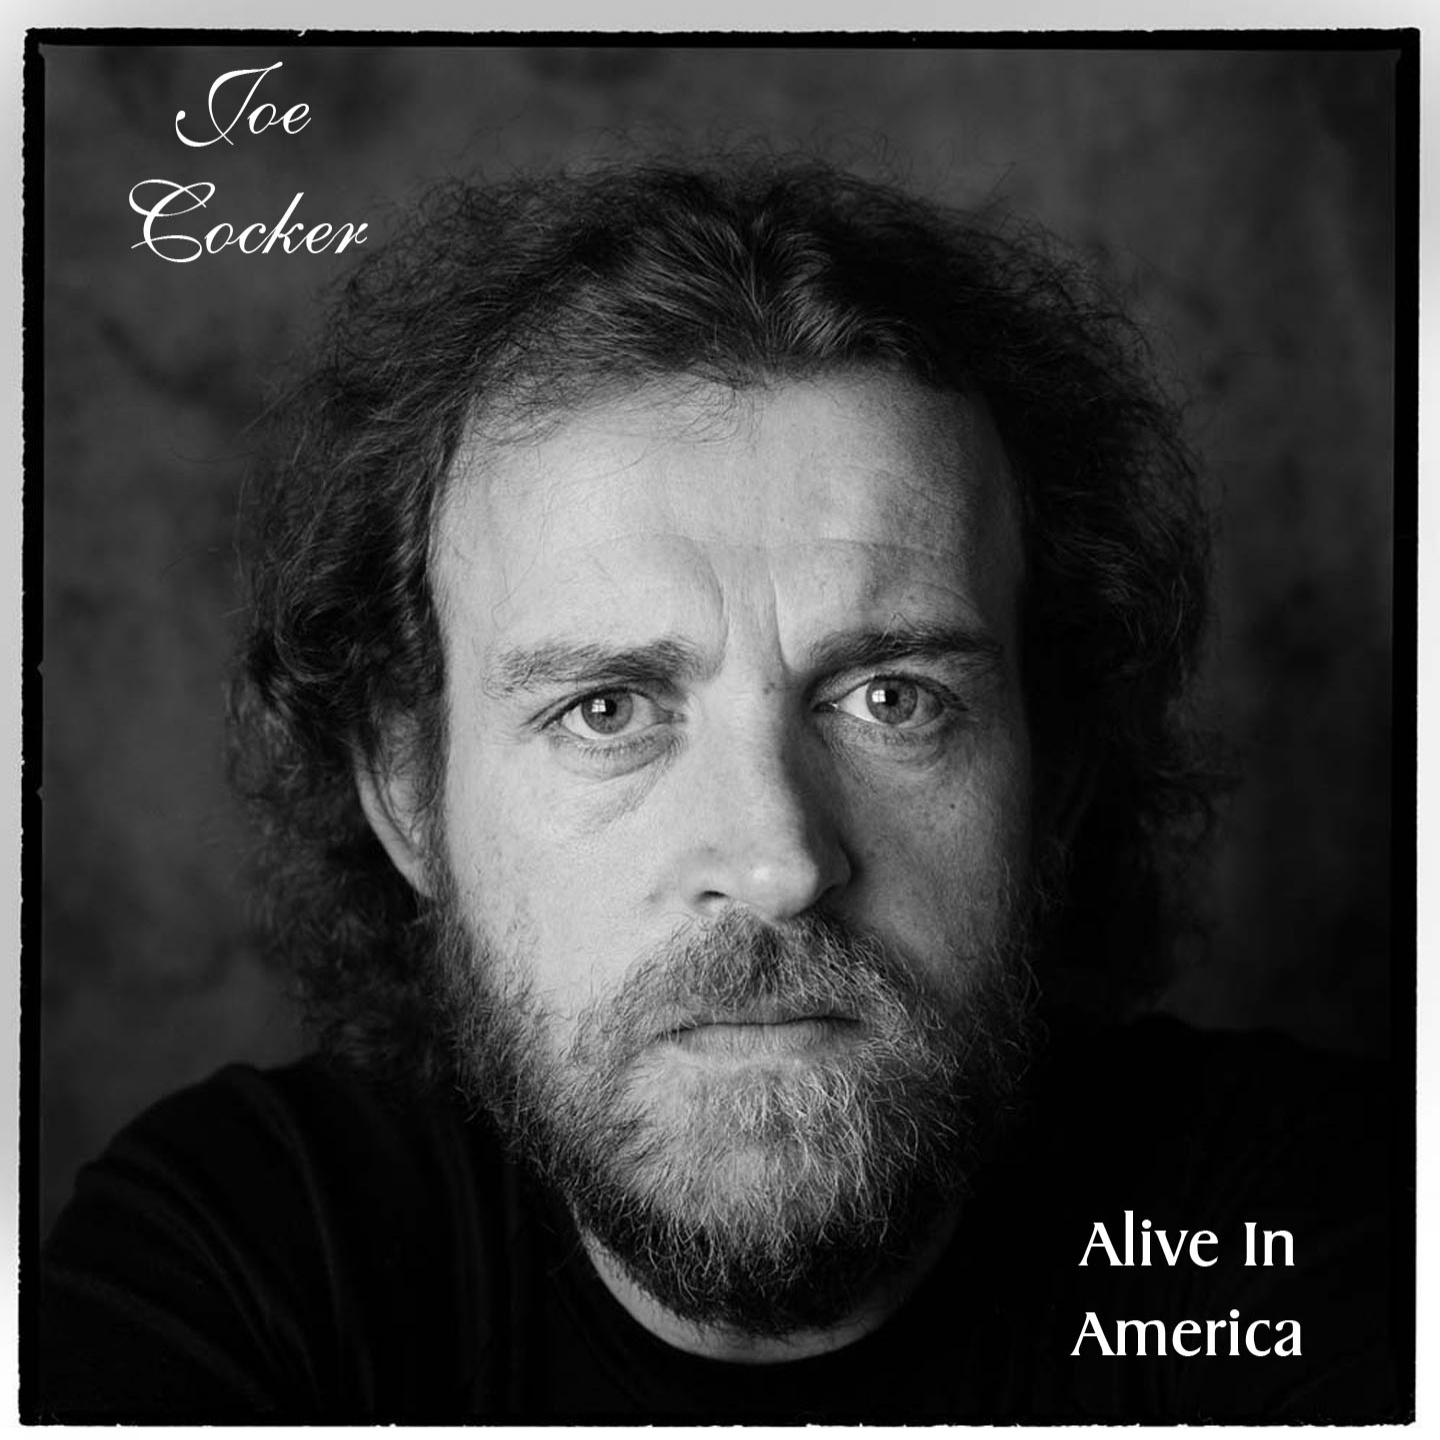 Joe cocker without her — pic 4